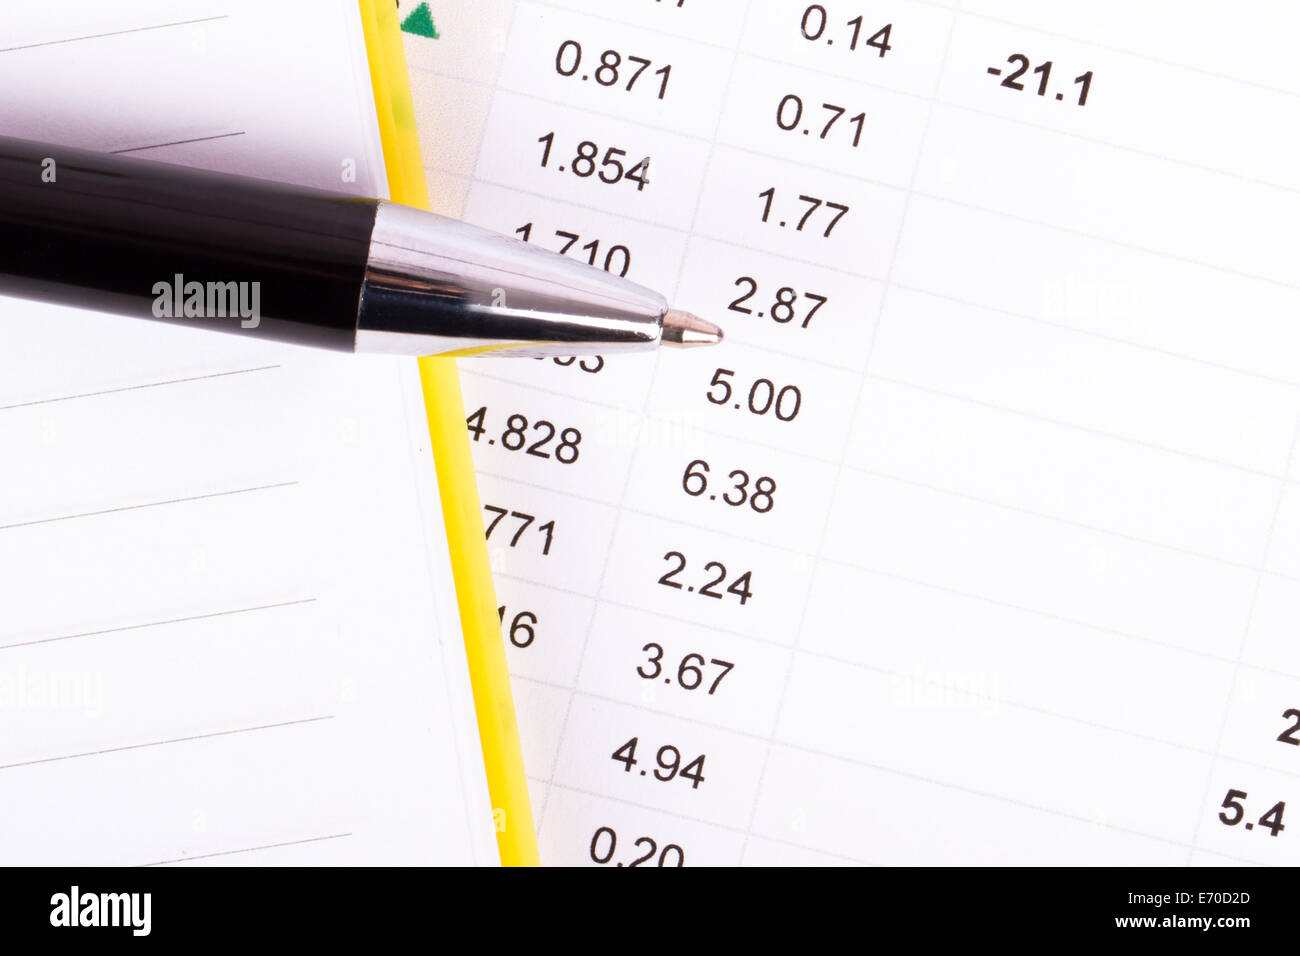 Financial data analysis with notebook and pen, top view. - Stock Image